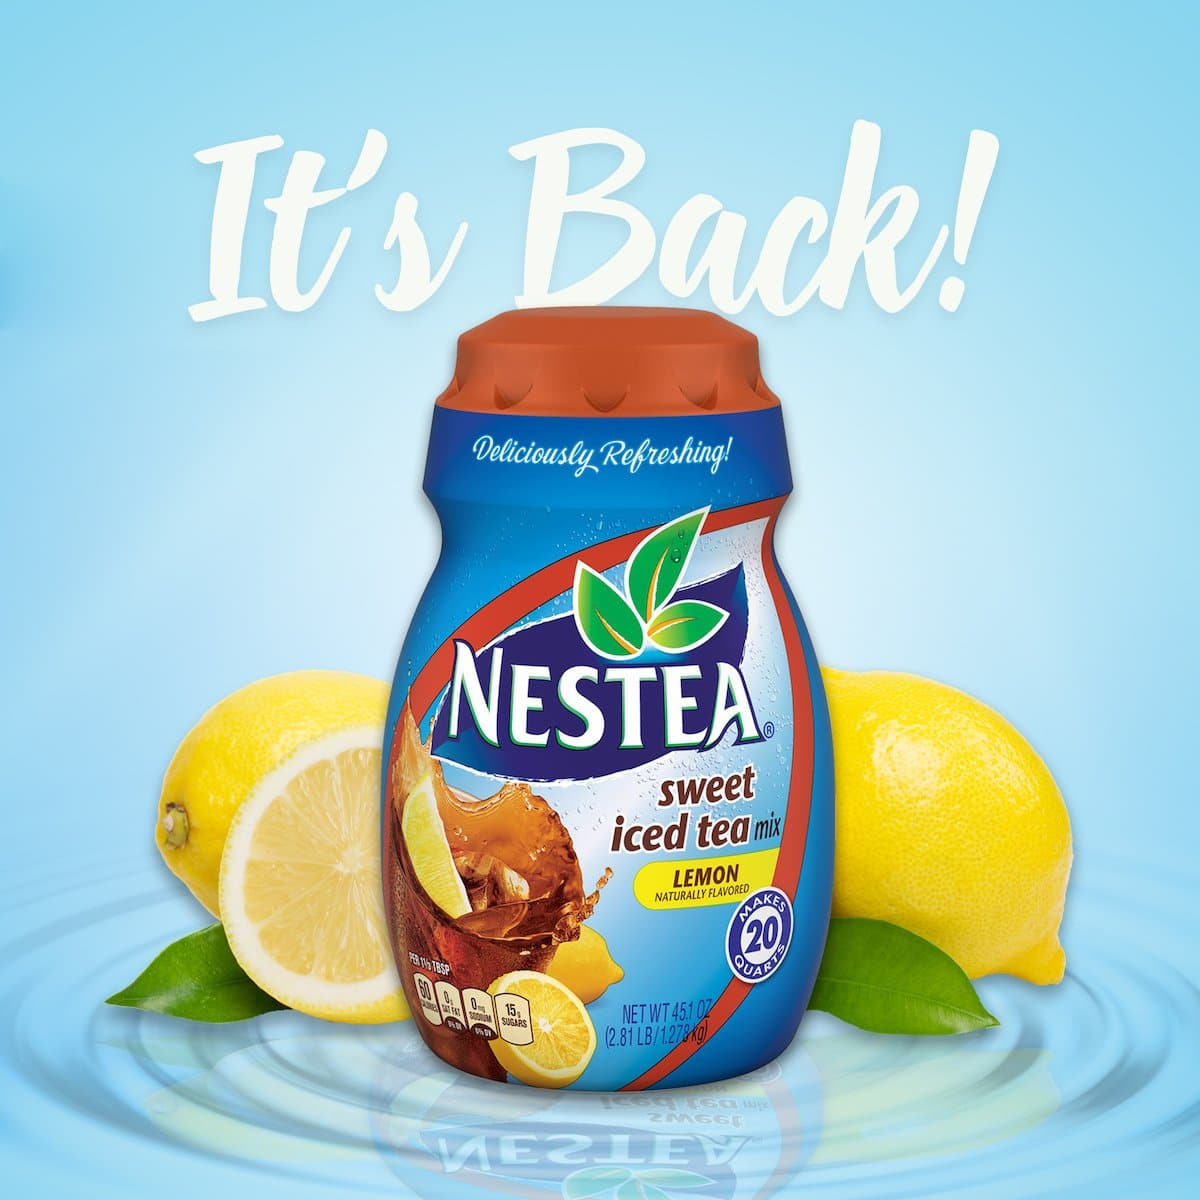 New Age Expands Partnership With Nestle S.a. To Relaunch Nestea Powdered Tea photo